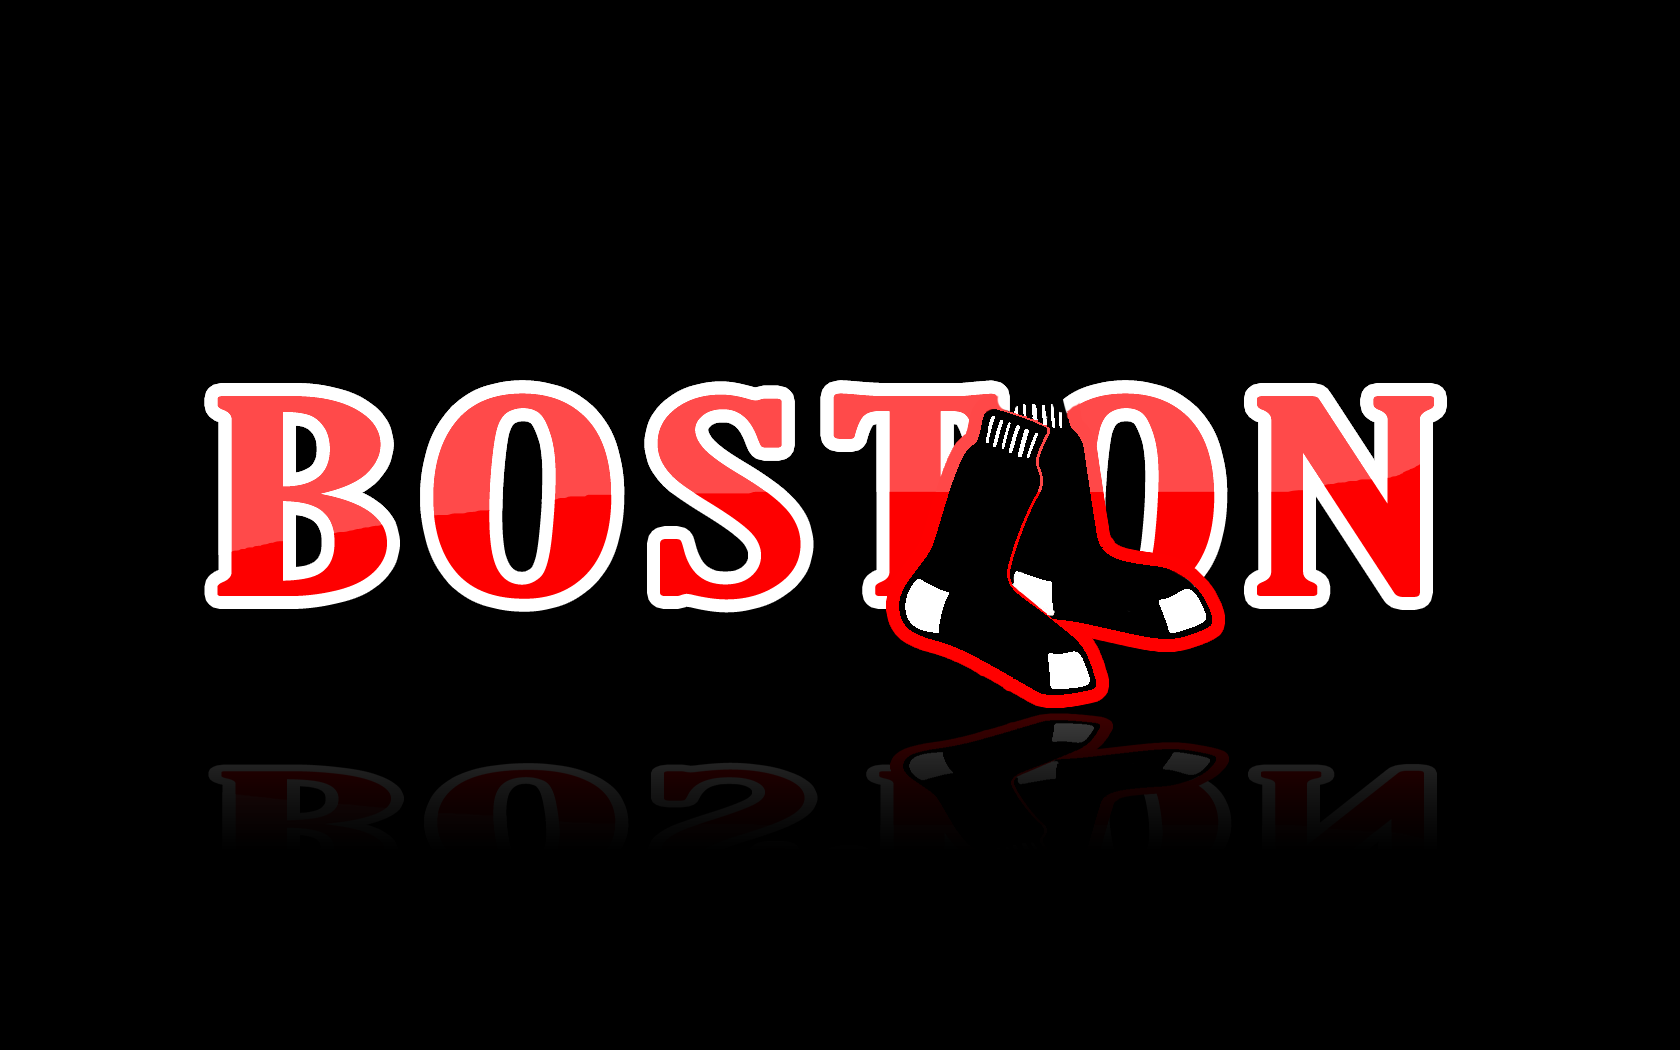 Boston red sox wallpapers - Wallpaper Bit